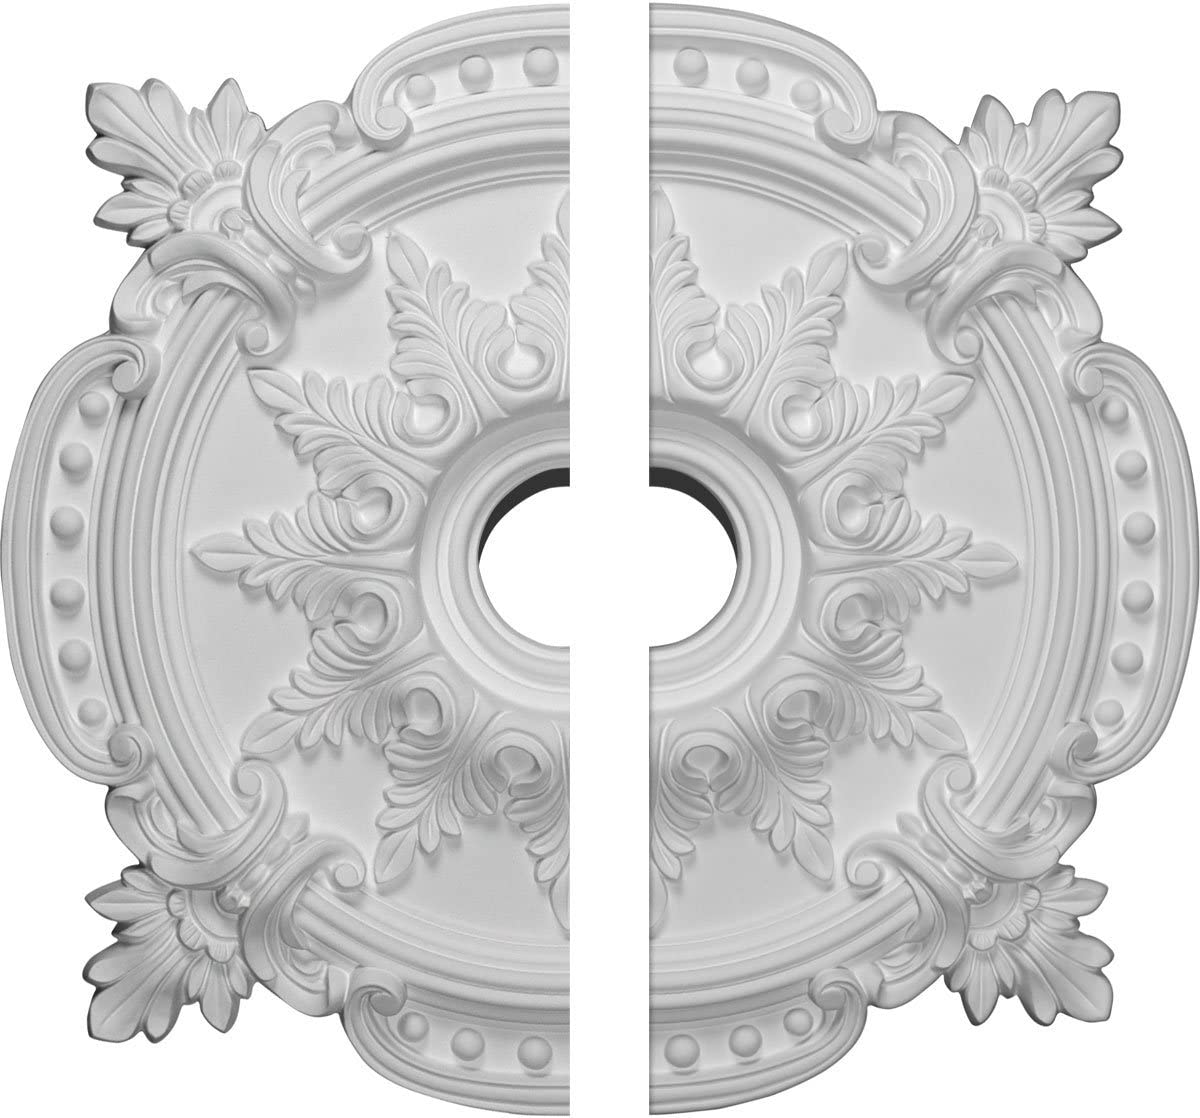 """Ekena Millwork CM28BE2 Benson Classic Ceiling Medallion, 28 3/8""""OD x 3 3/4""""ID x 1 5/8""""P (Fits Canopies up to 6 1/2""""), Factory Primed"""